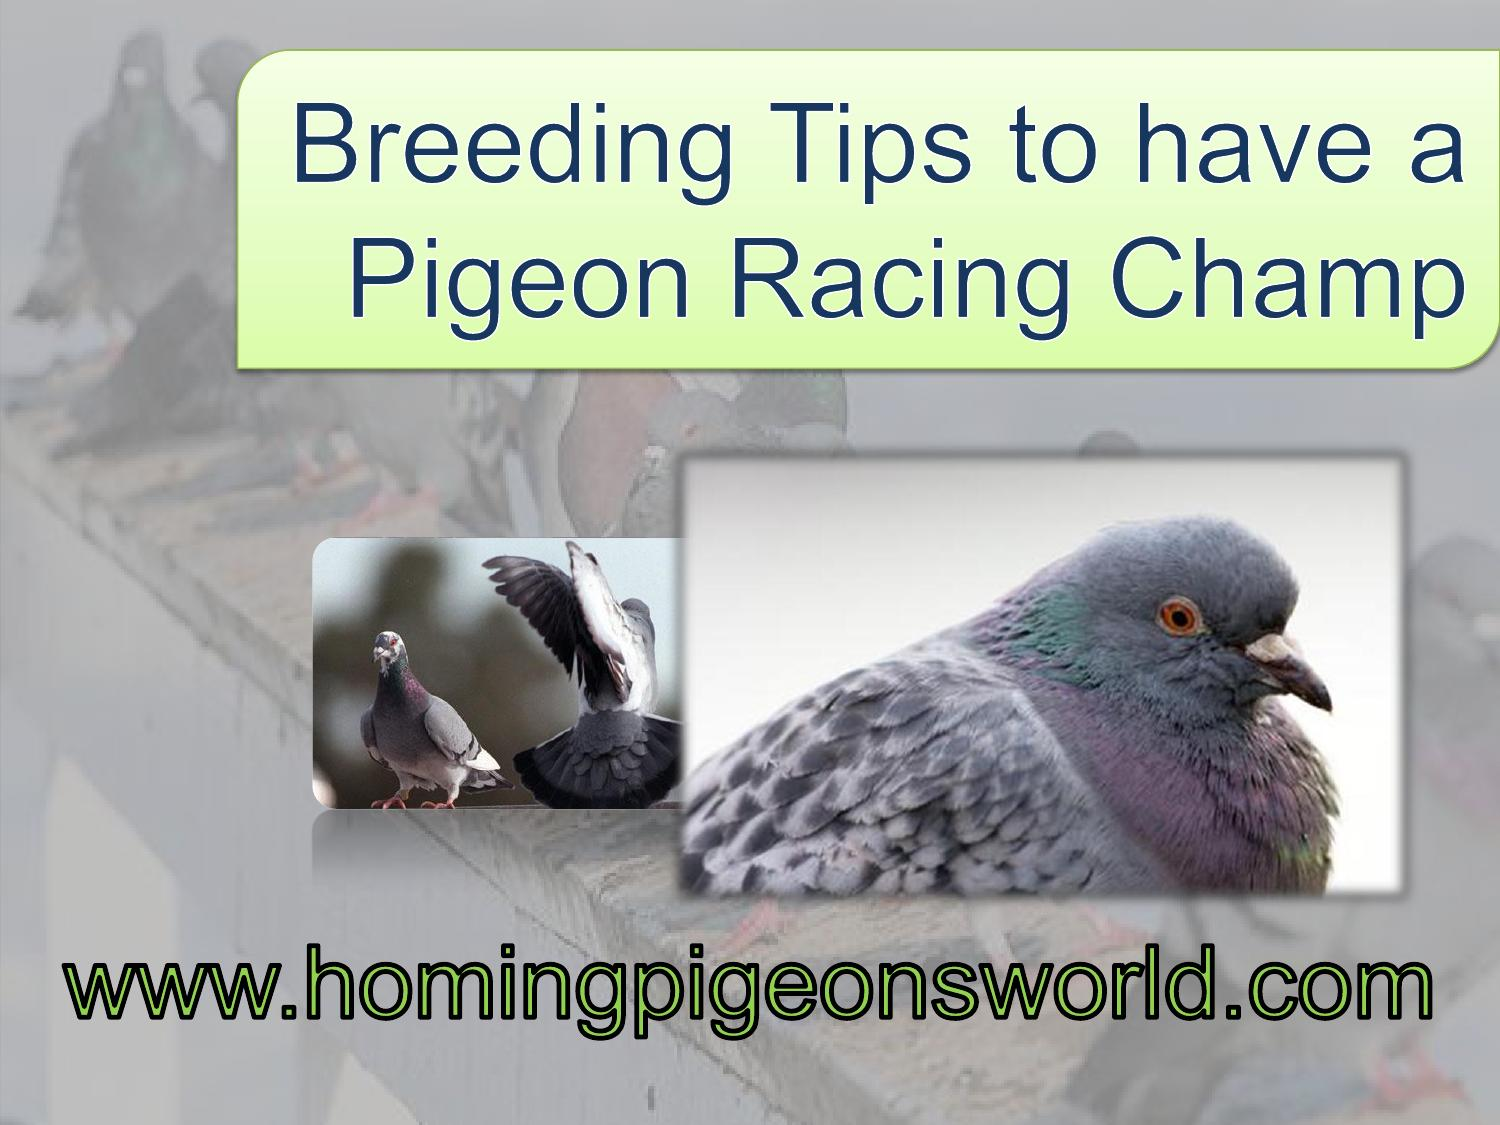 Breeding Tips to have a Racing Pigeon Champ by julian